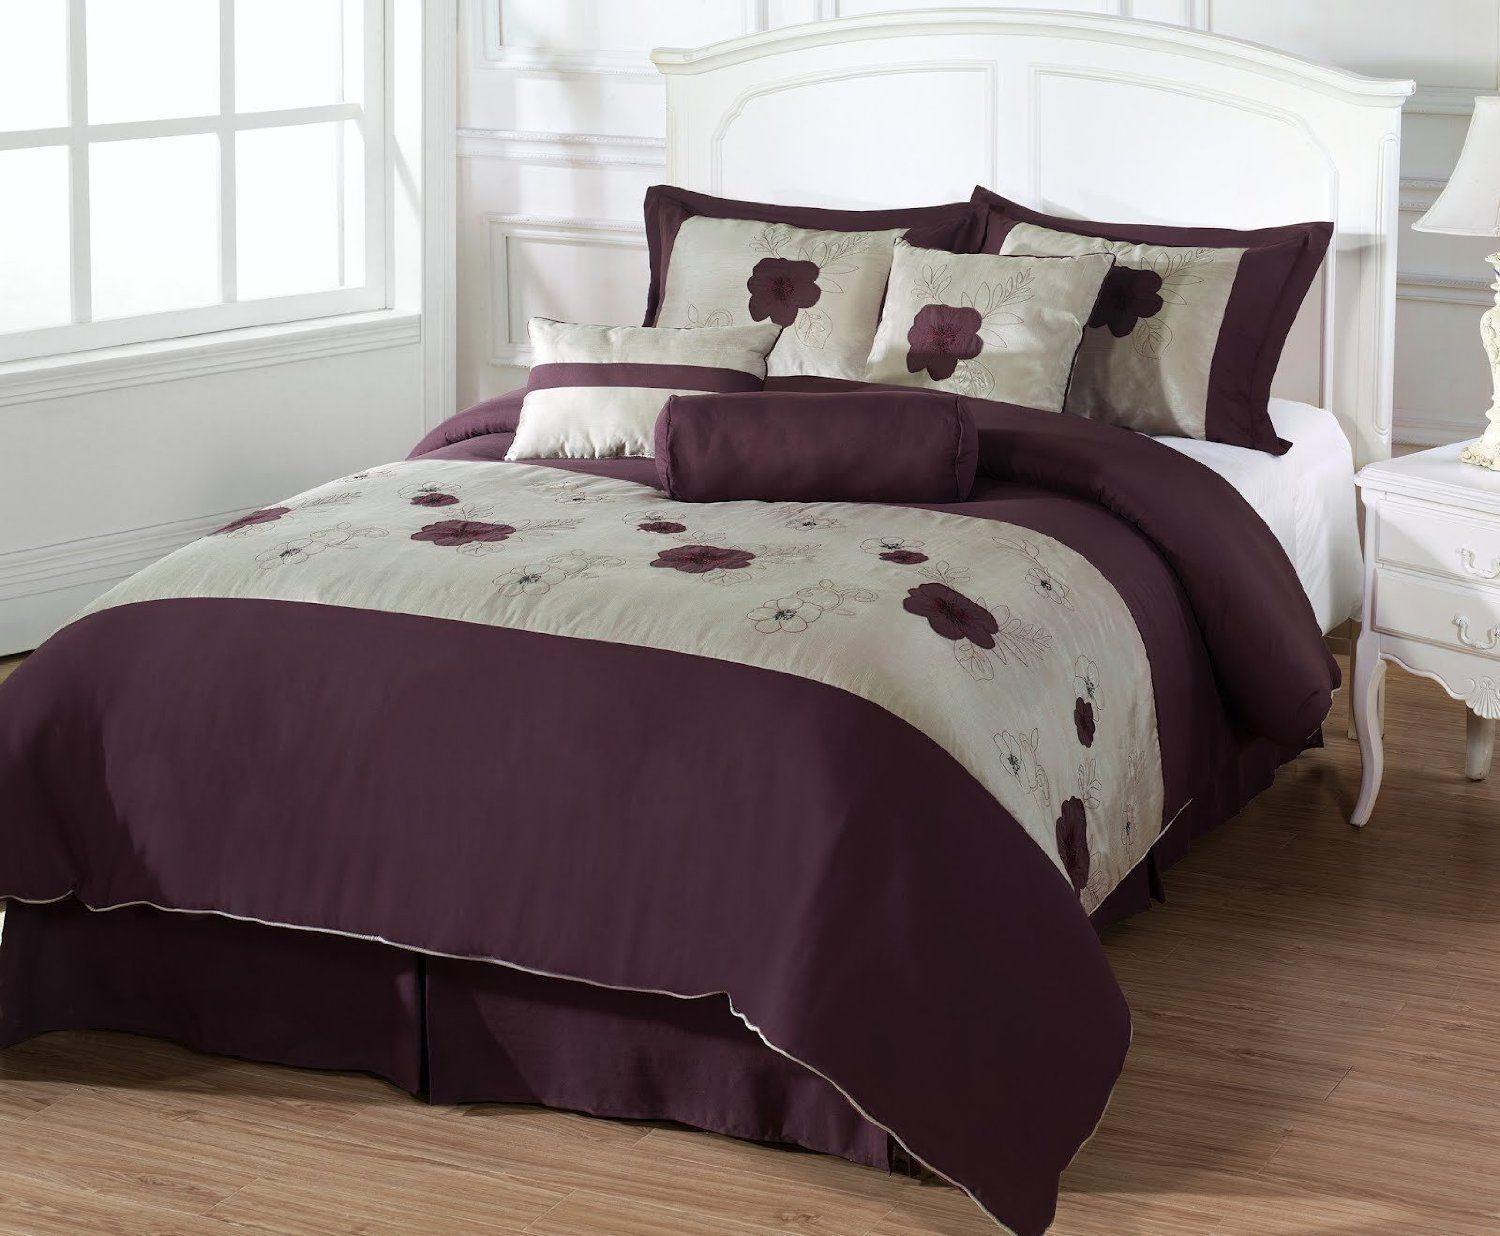 queen amazon winter printed comforter com king tree microfiber soft set size brown pin piece